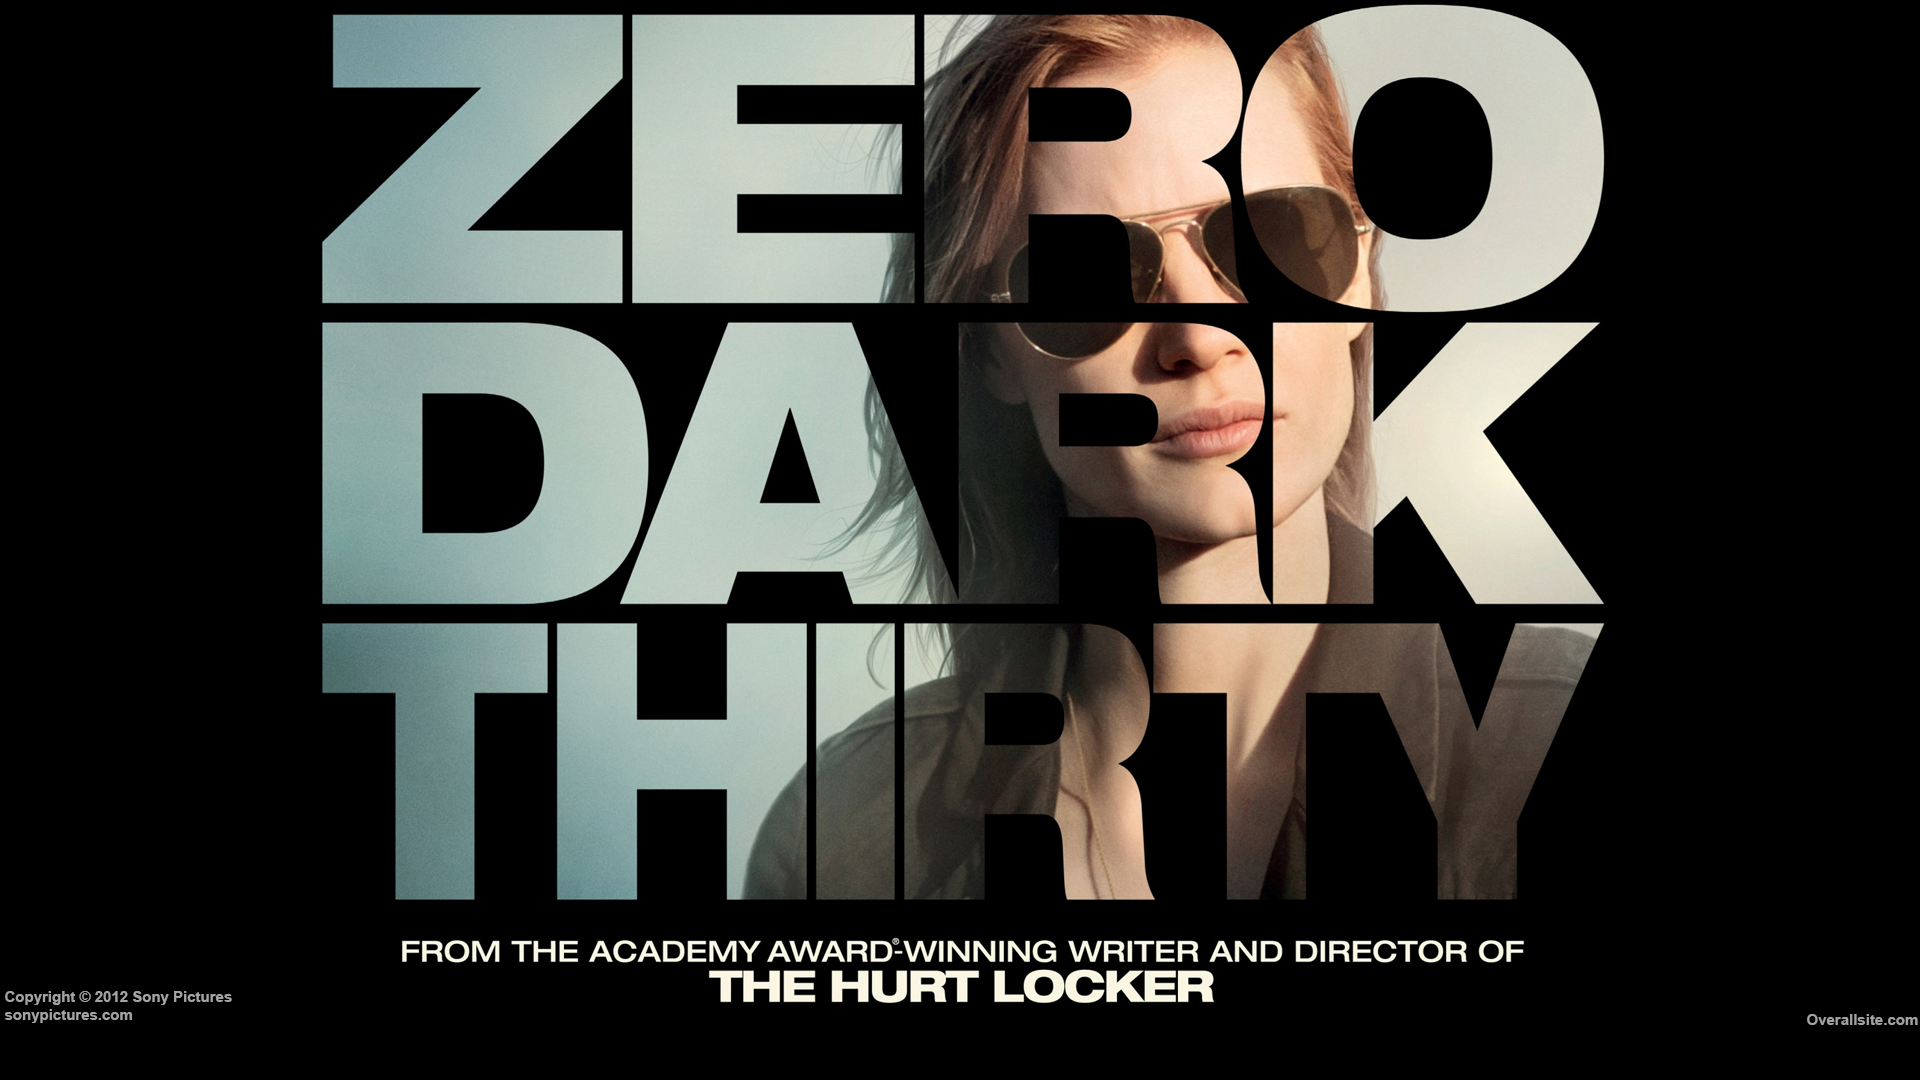 Watch & Discuss Movies - Zero Dark Thirty | ARTCONNECT